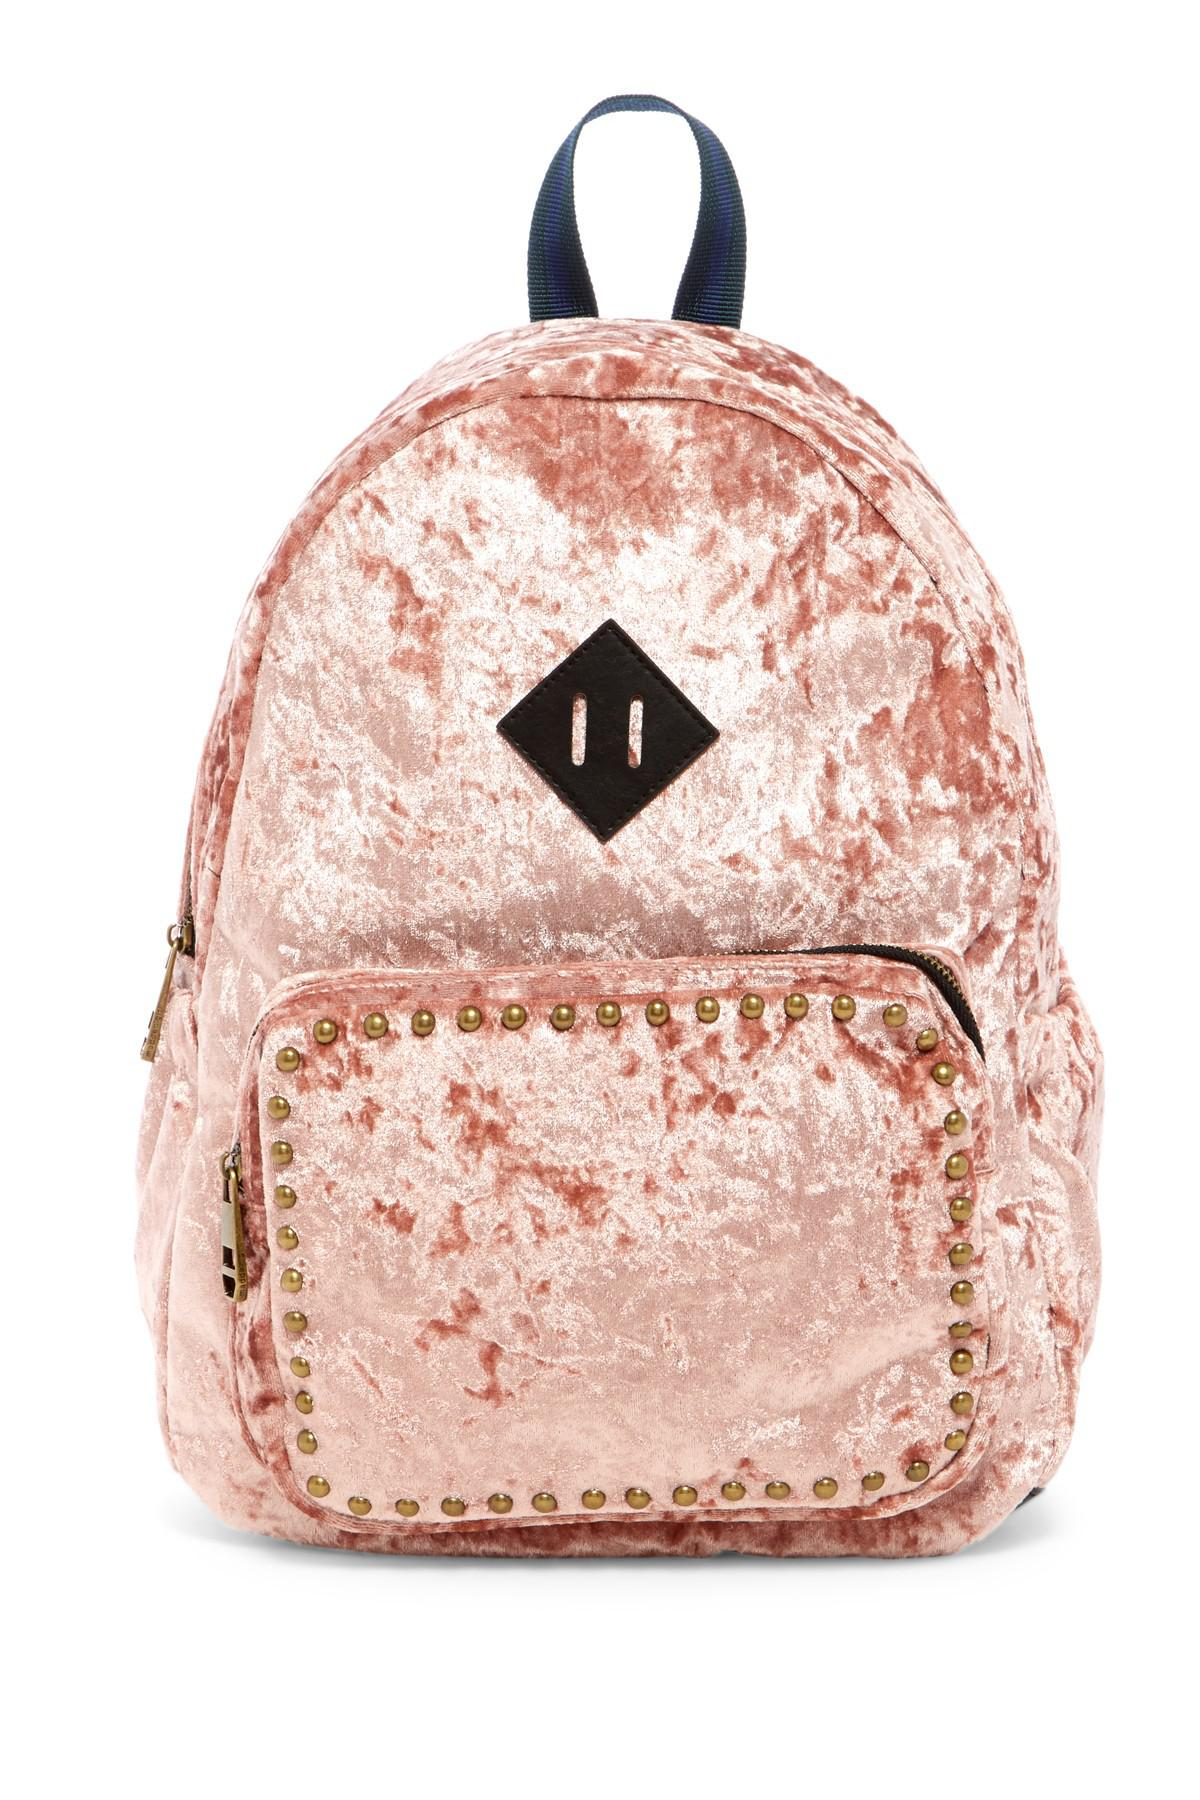 0452d58ce4 Gallery. Previously sold at  Nordstrom Rack · Women s Quilted Leather  Backpacks ...